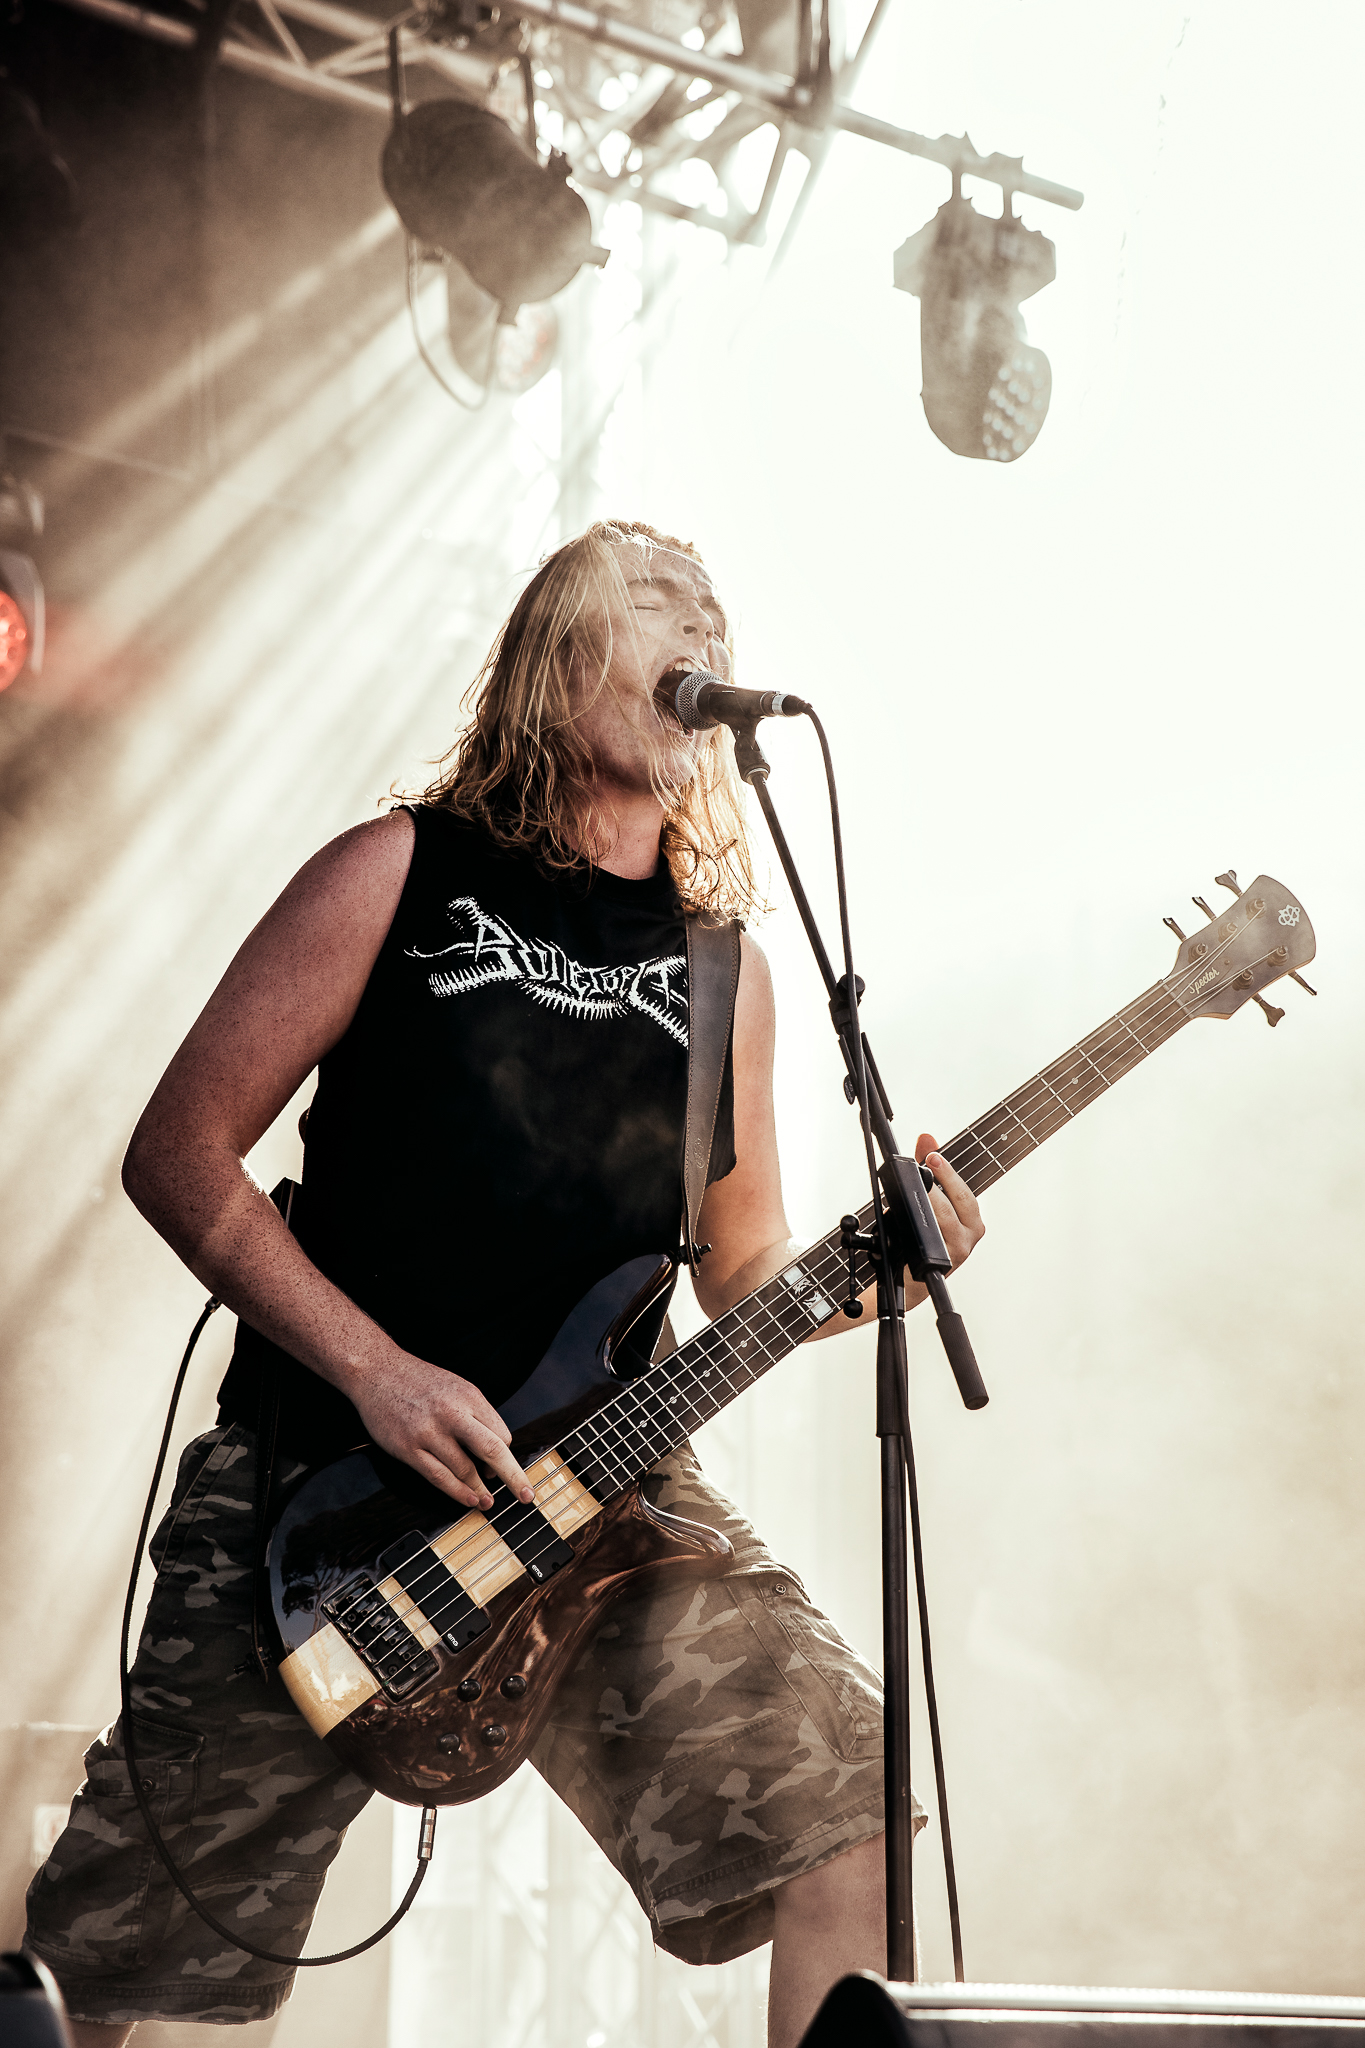 Alien_Weaponry_Download110319_Nathan- (1).JPG